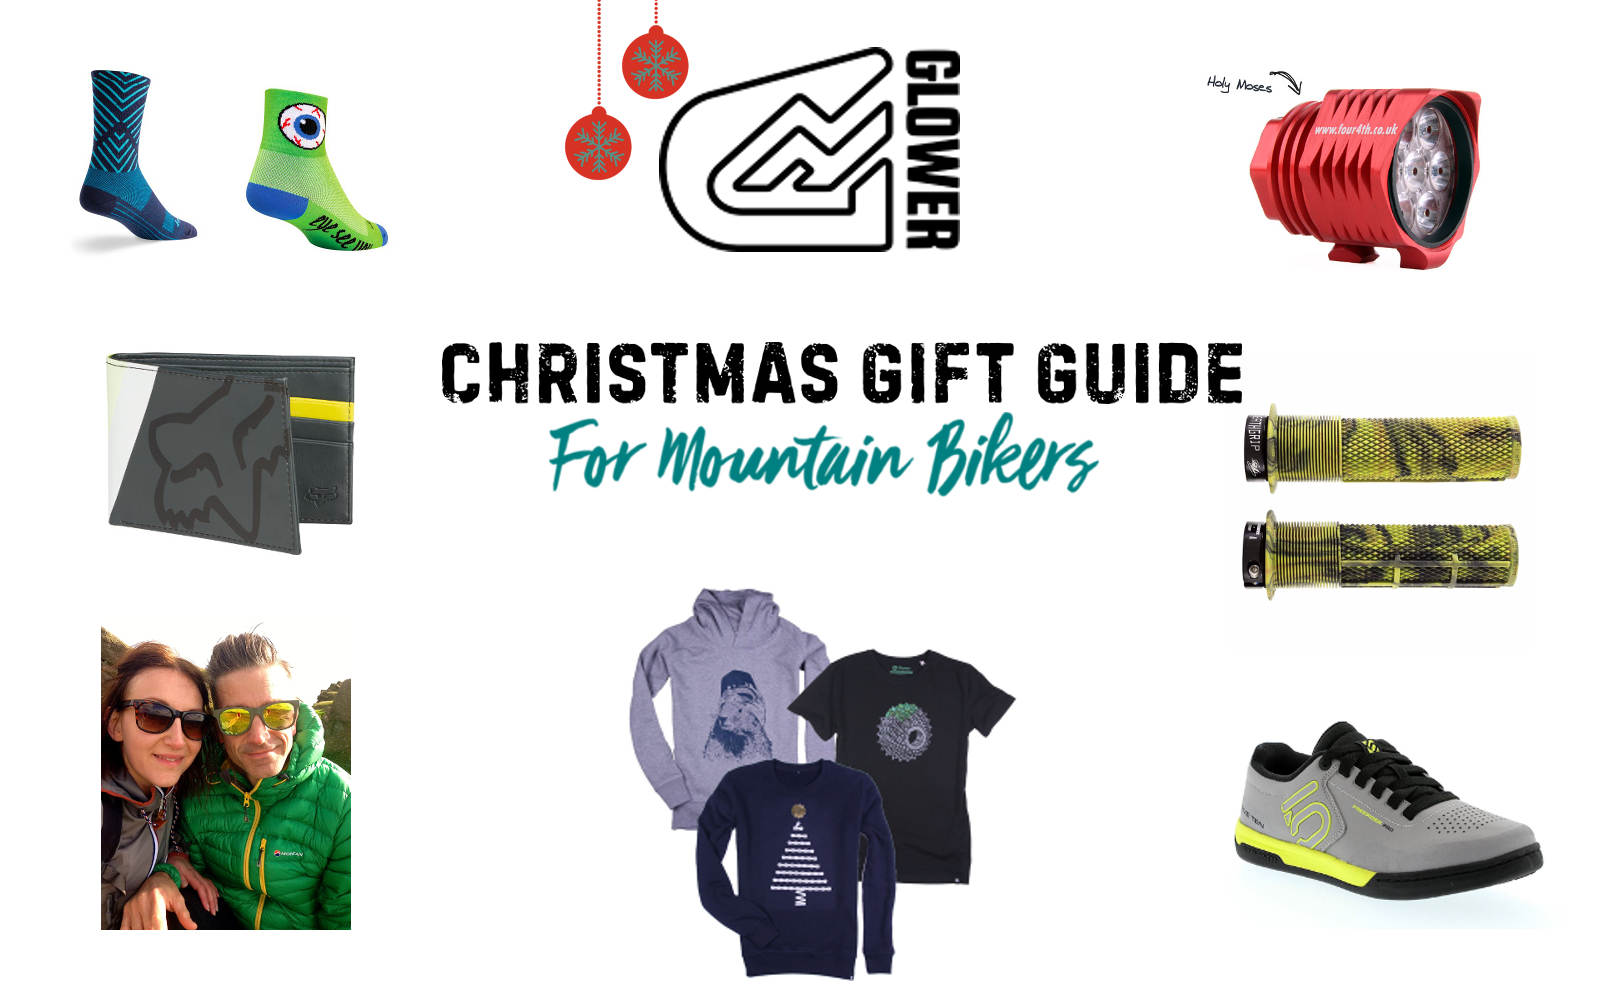 Unique Gift For Christmas.12 Unique Gifts For Mountain Bikers The Raddest Christmas